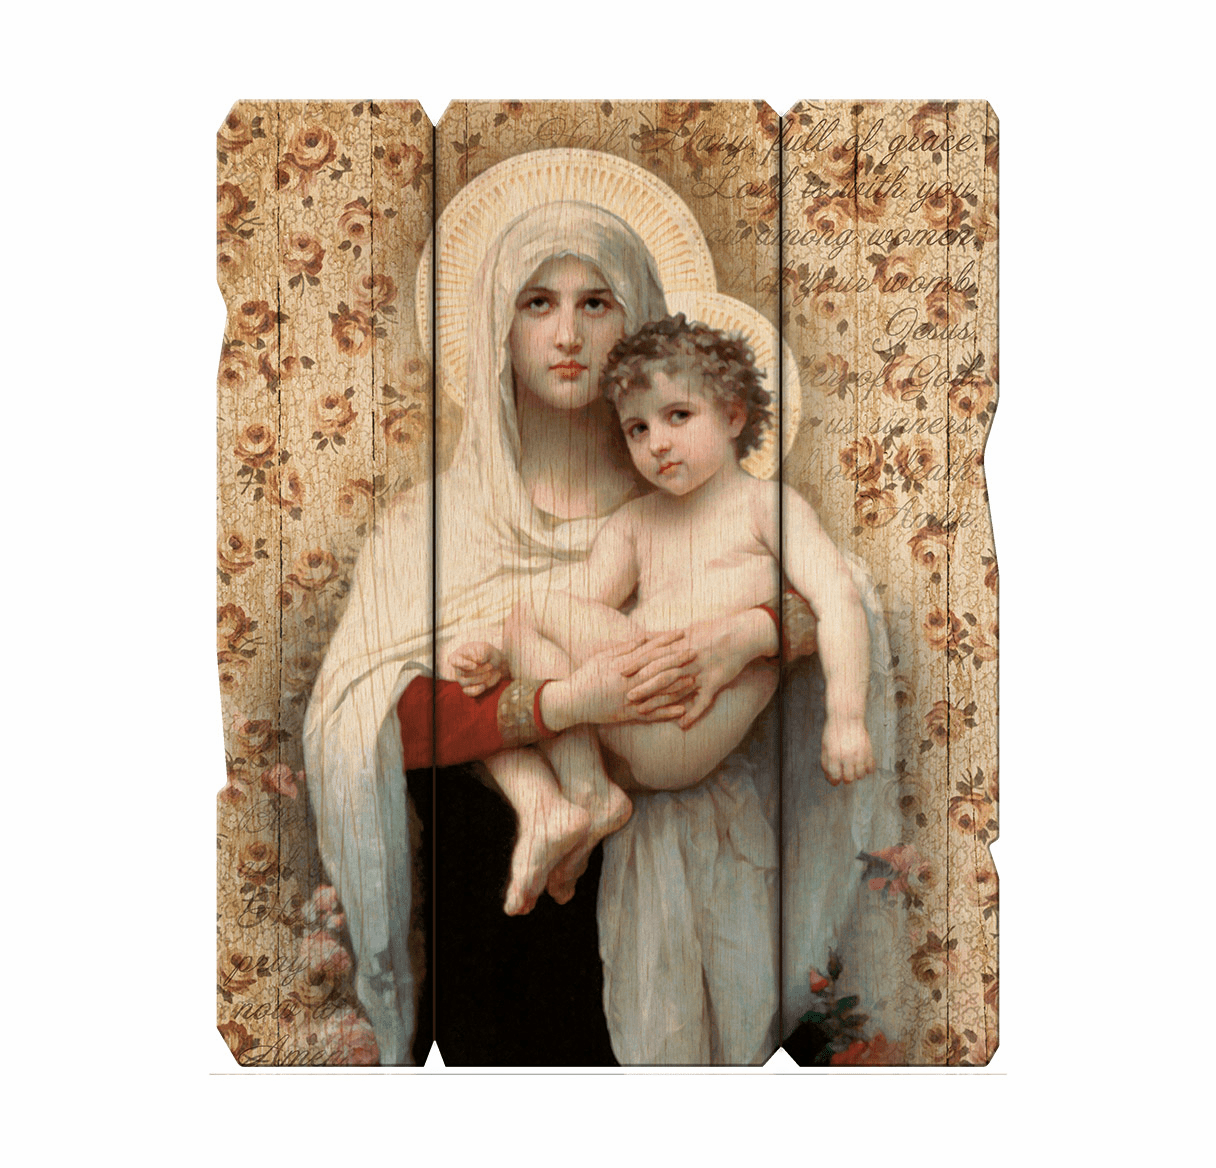 William J Hirten Christian Vintage Wooden Wall Plaques